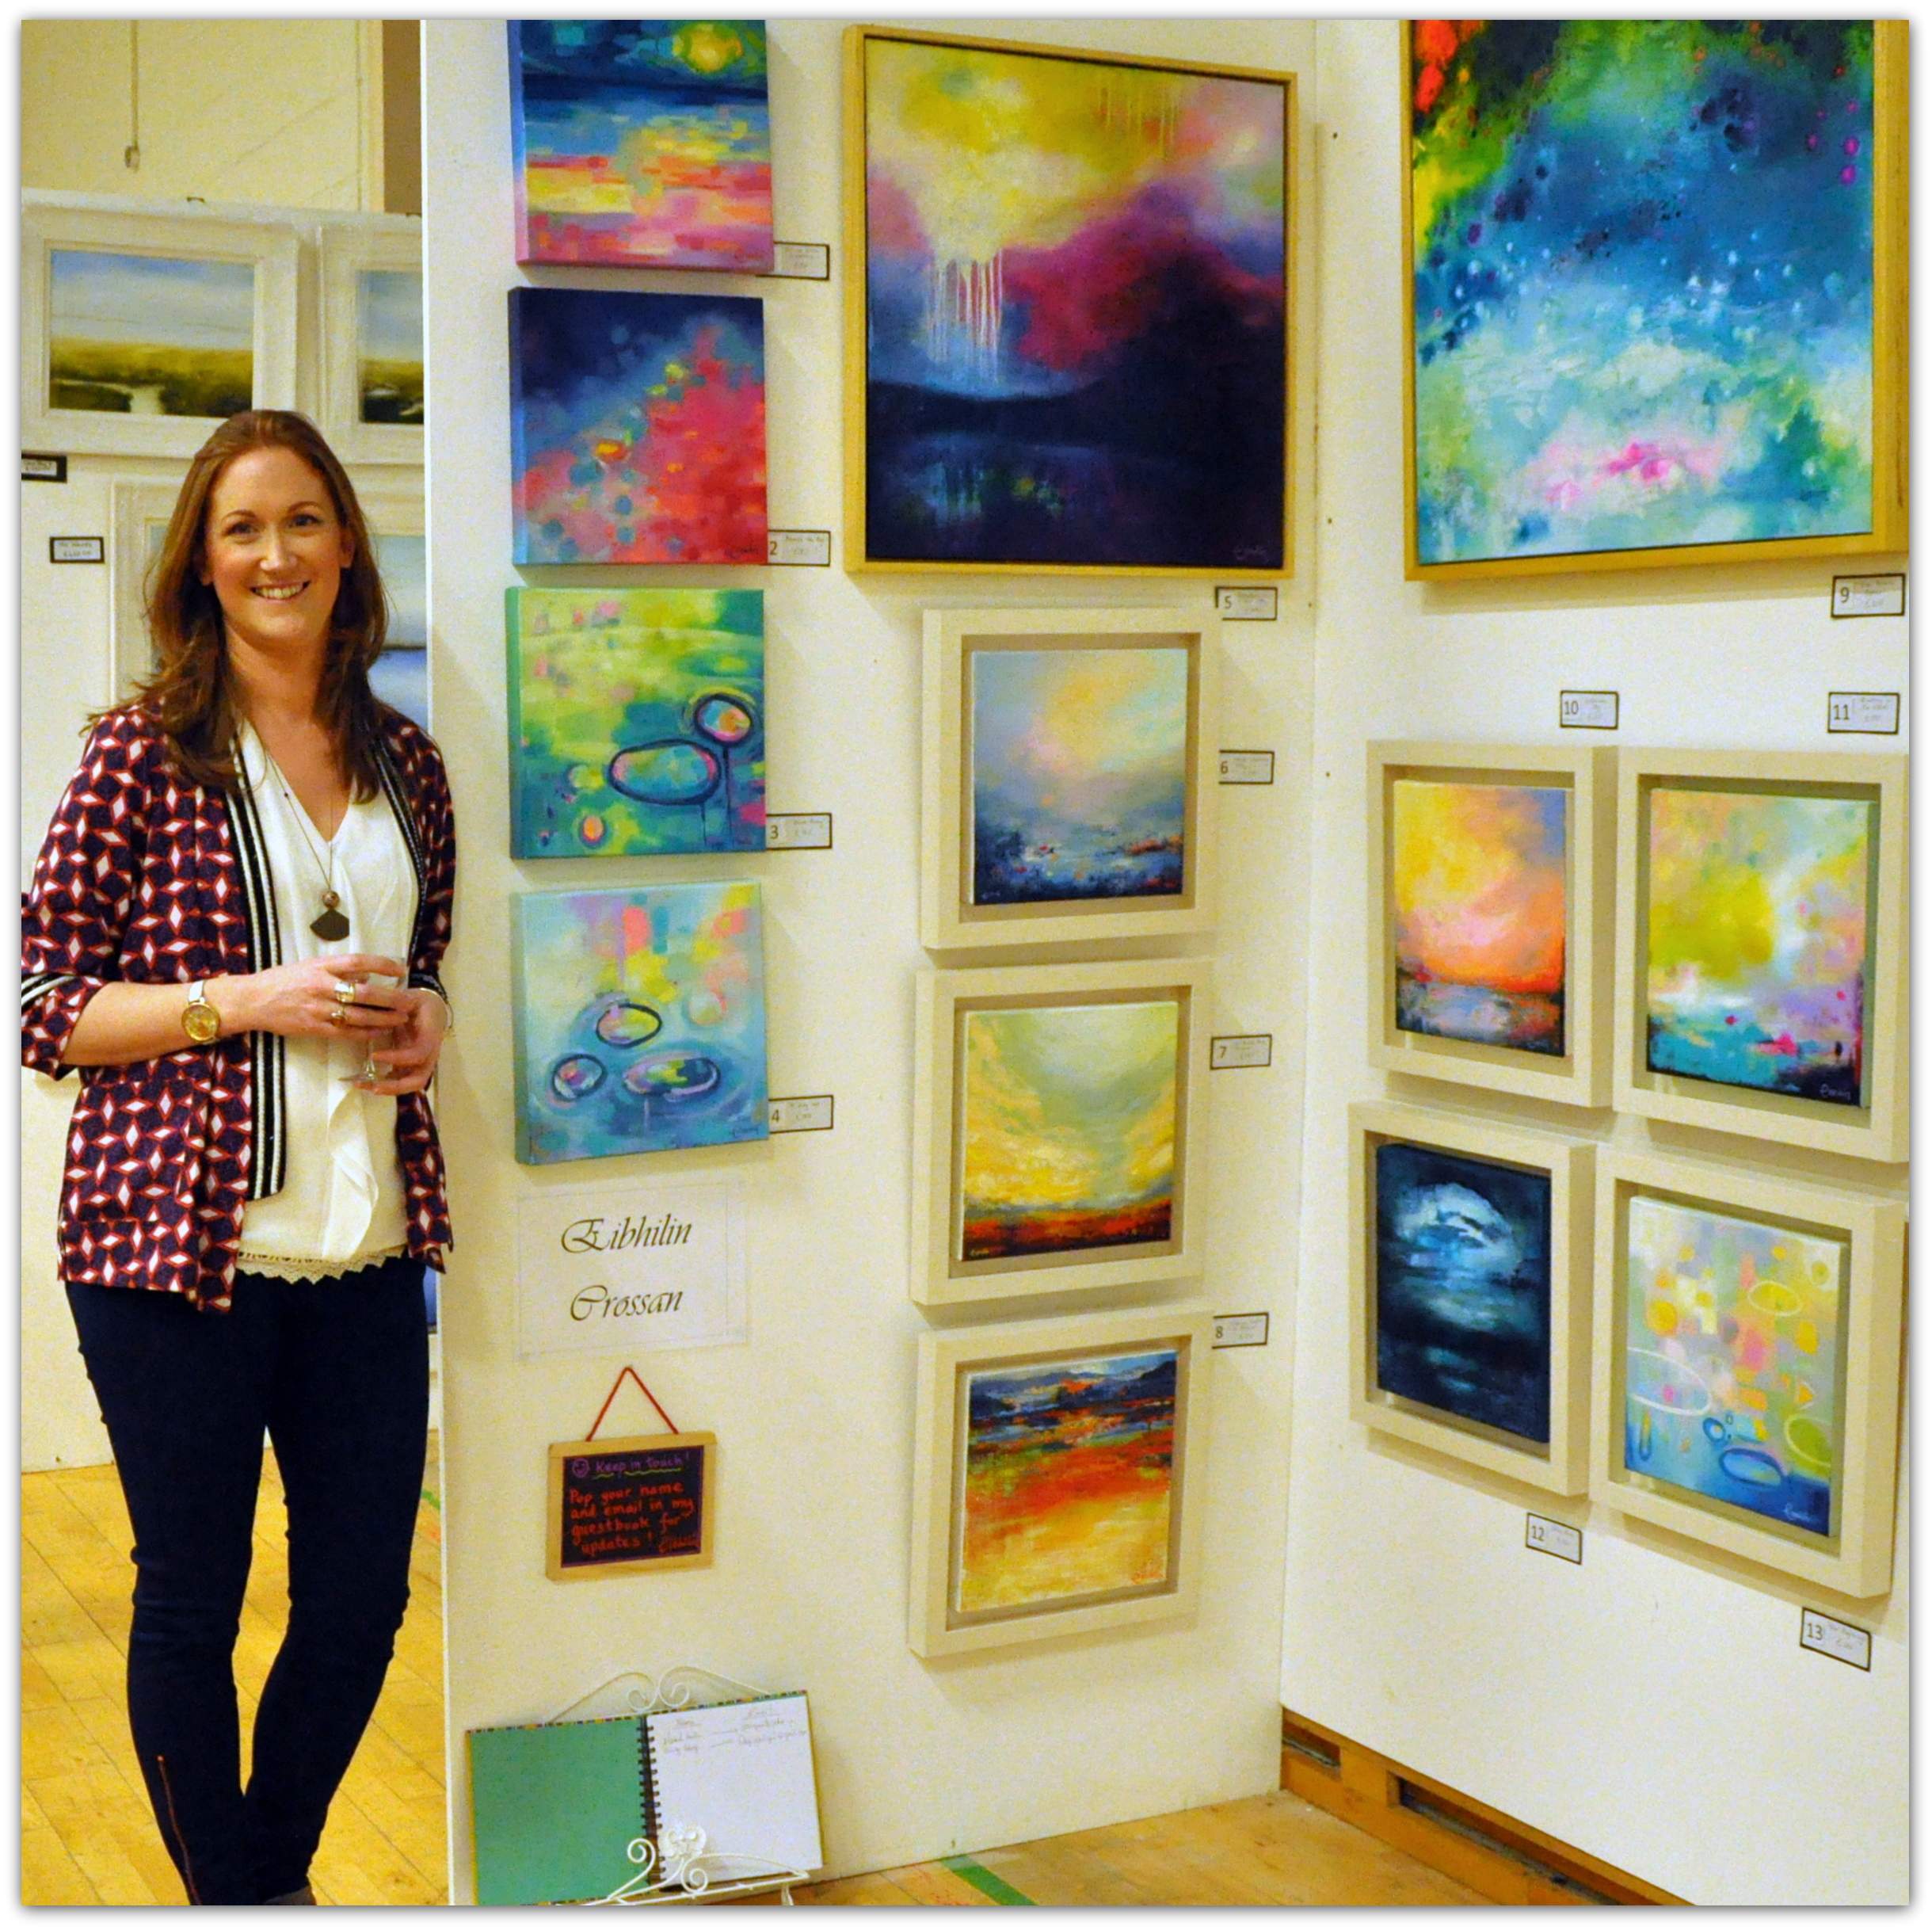 Lucan Art Fair Exhibition, Dublin